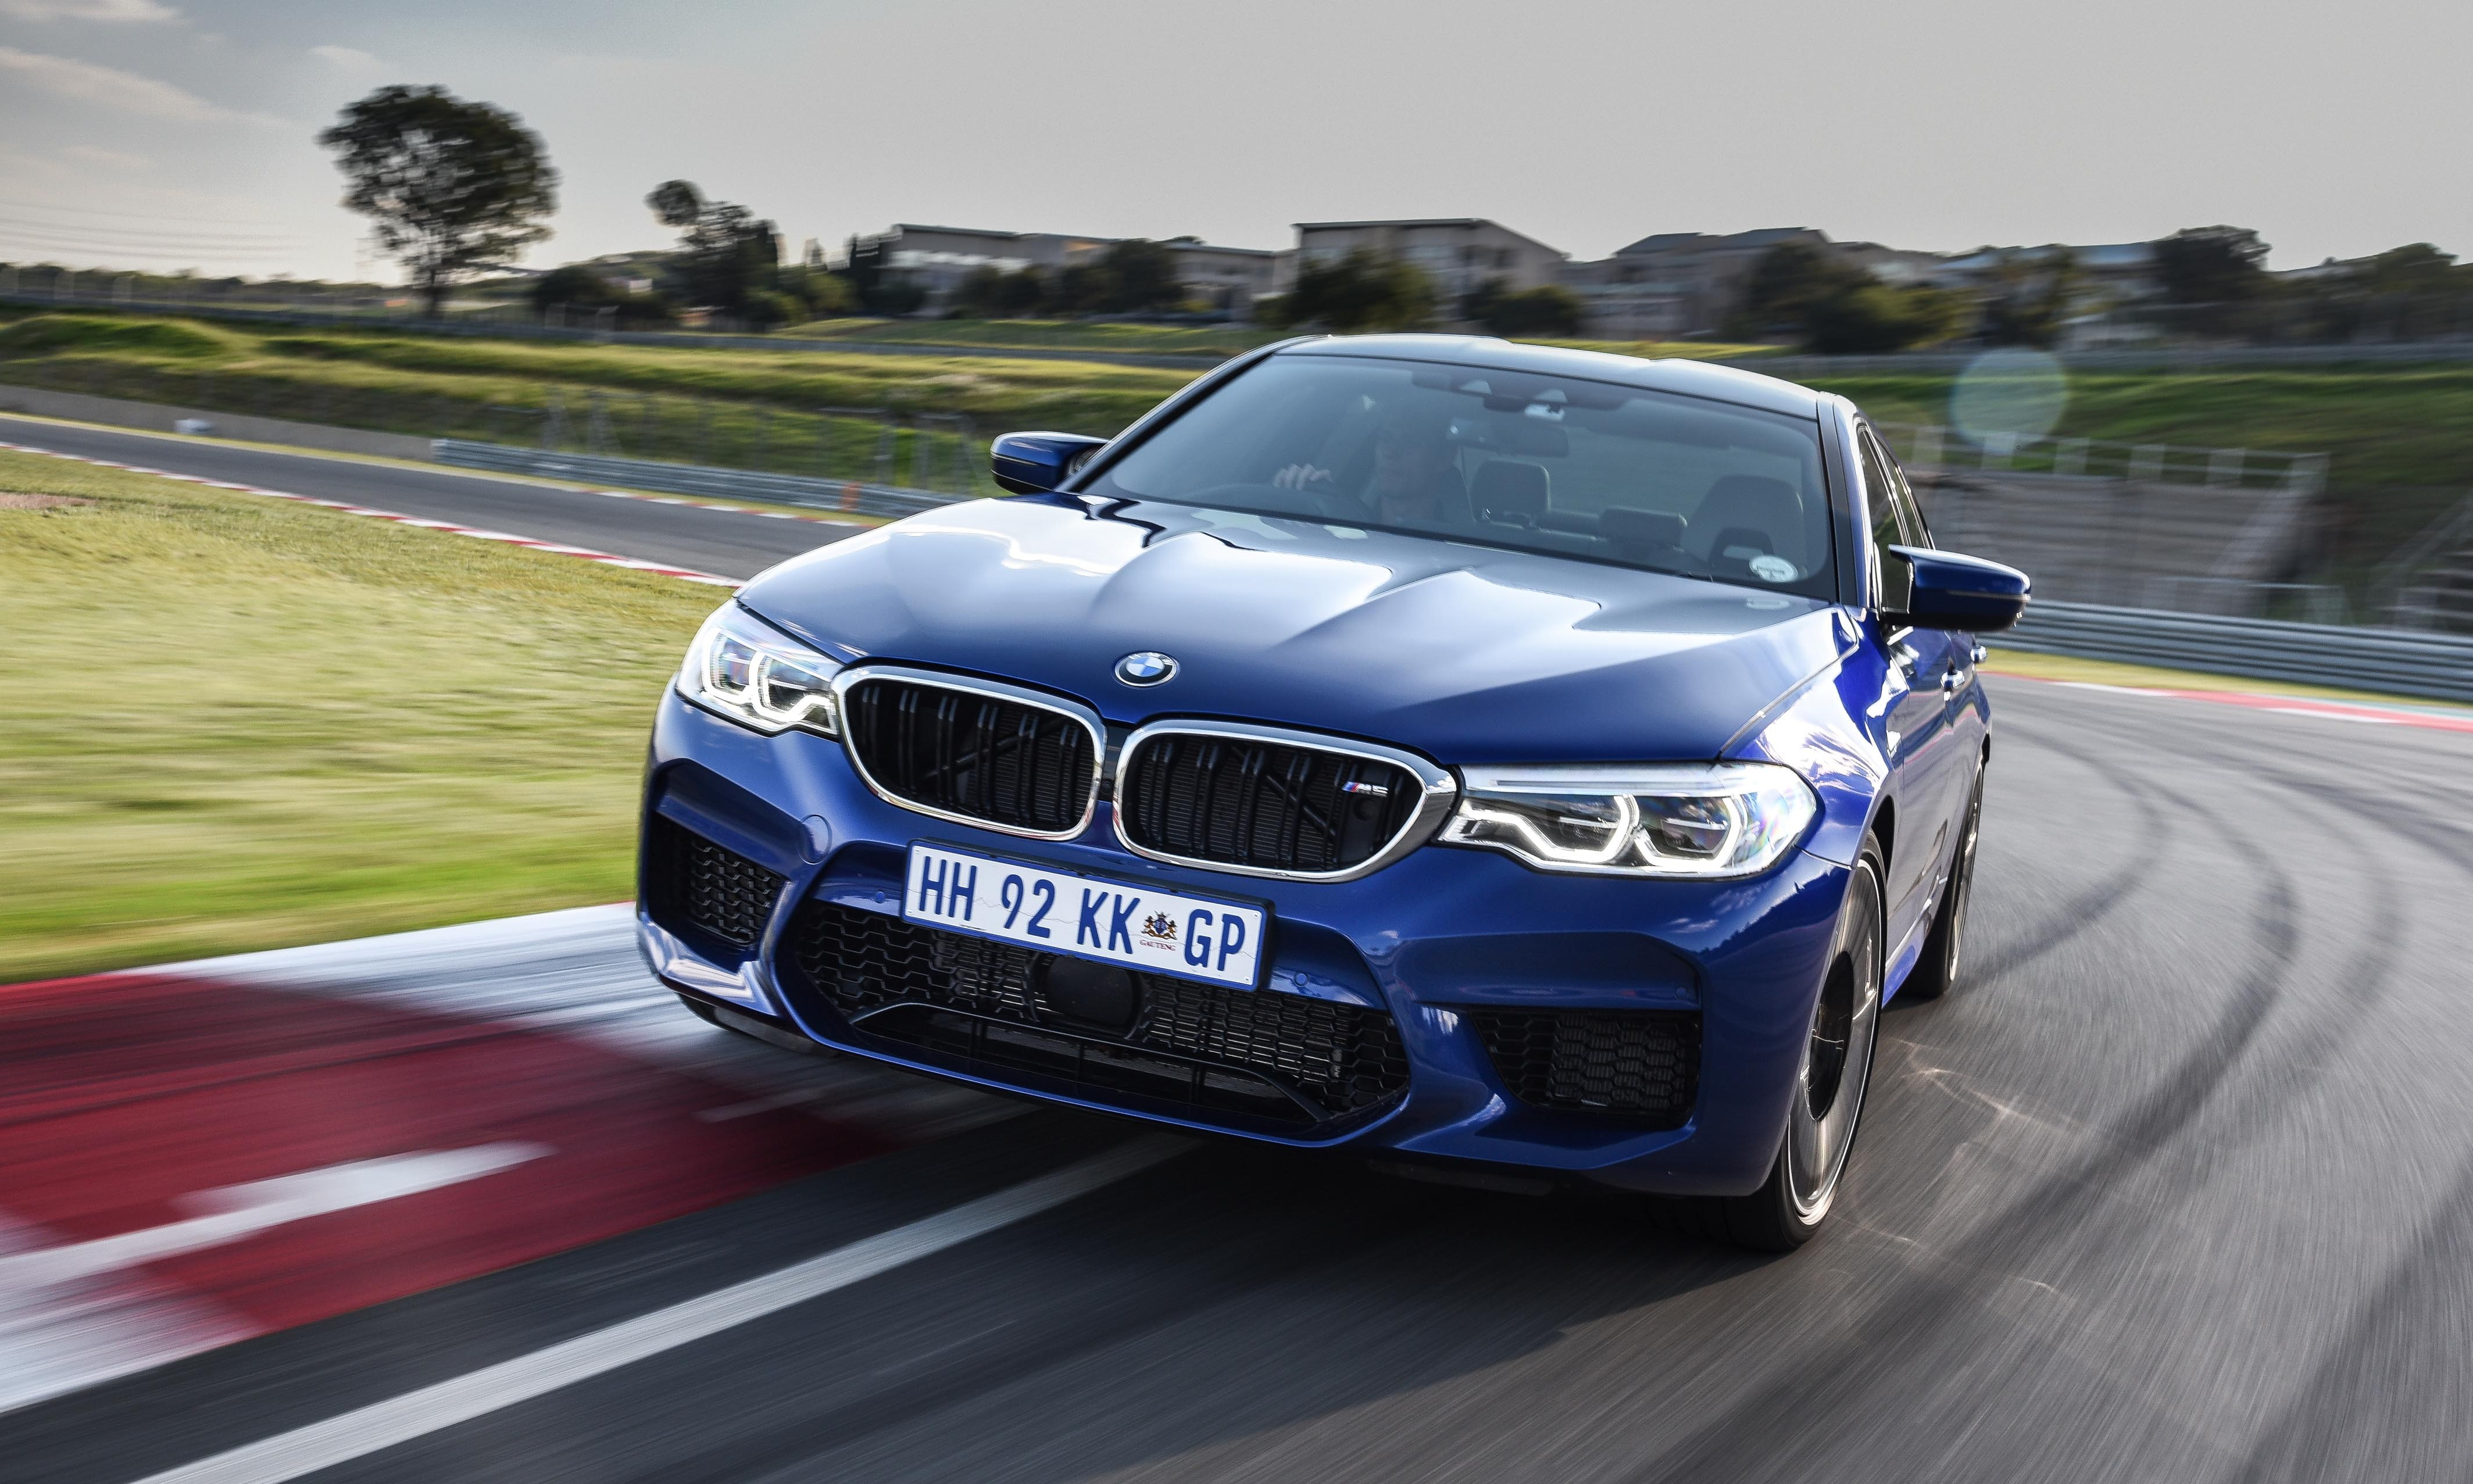 New BMW M5 has a domed bonnet and different front bumper